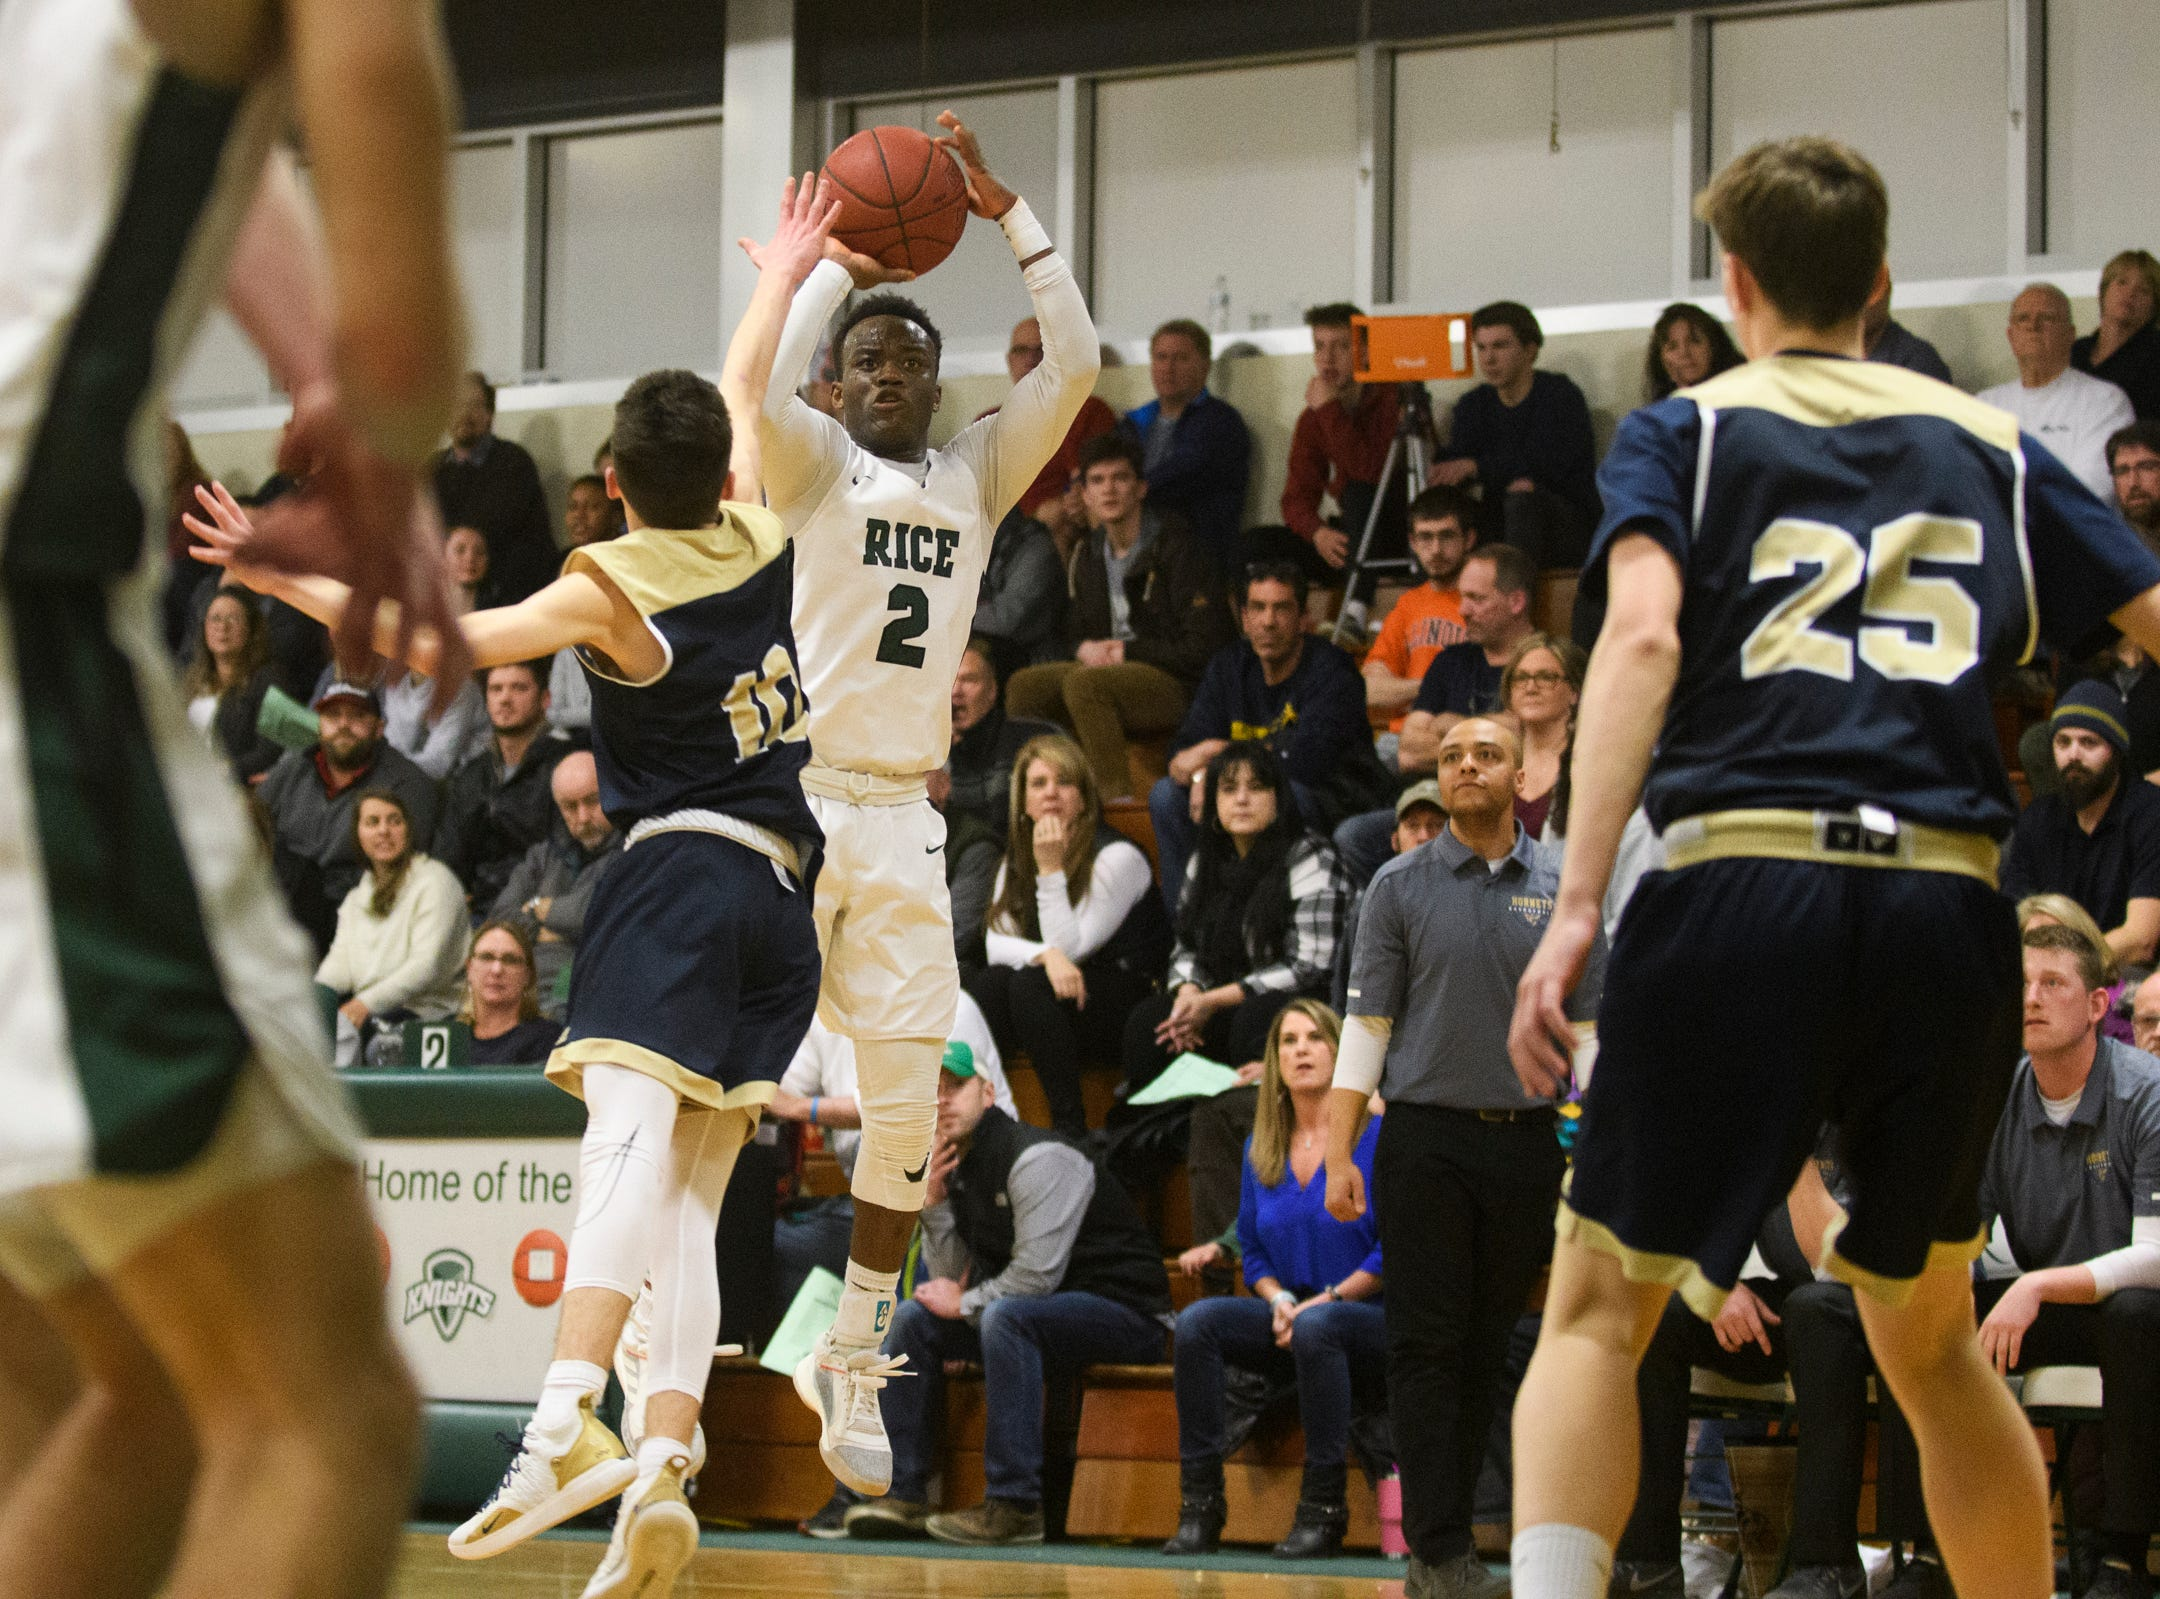 Rice's Michel Ndayishimiye (2) shoots the ball during the boys quarterfinal basketball game between the Essex Hornets and the Rice Green Knights at Rice Memorial High School on Friday night March 8, 2019 in South Burlington, Vermont.